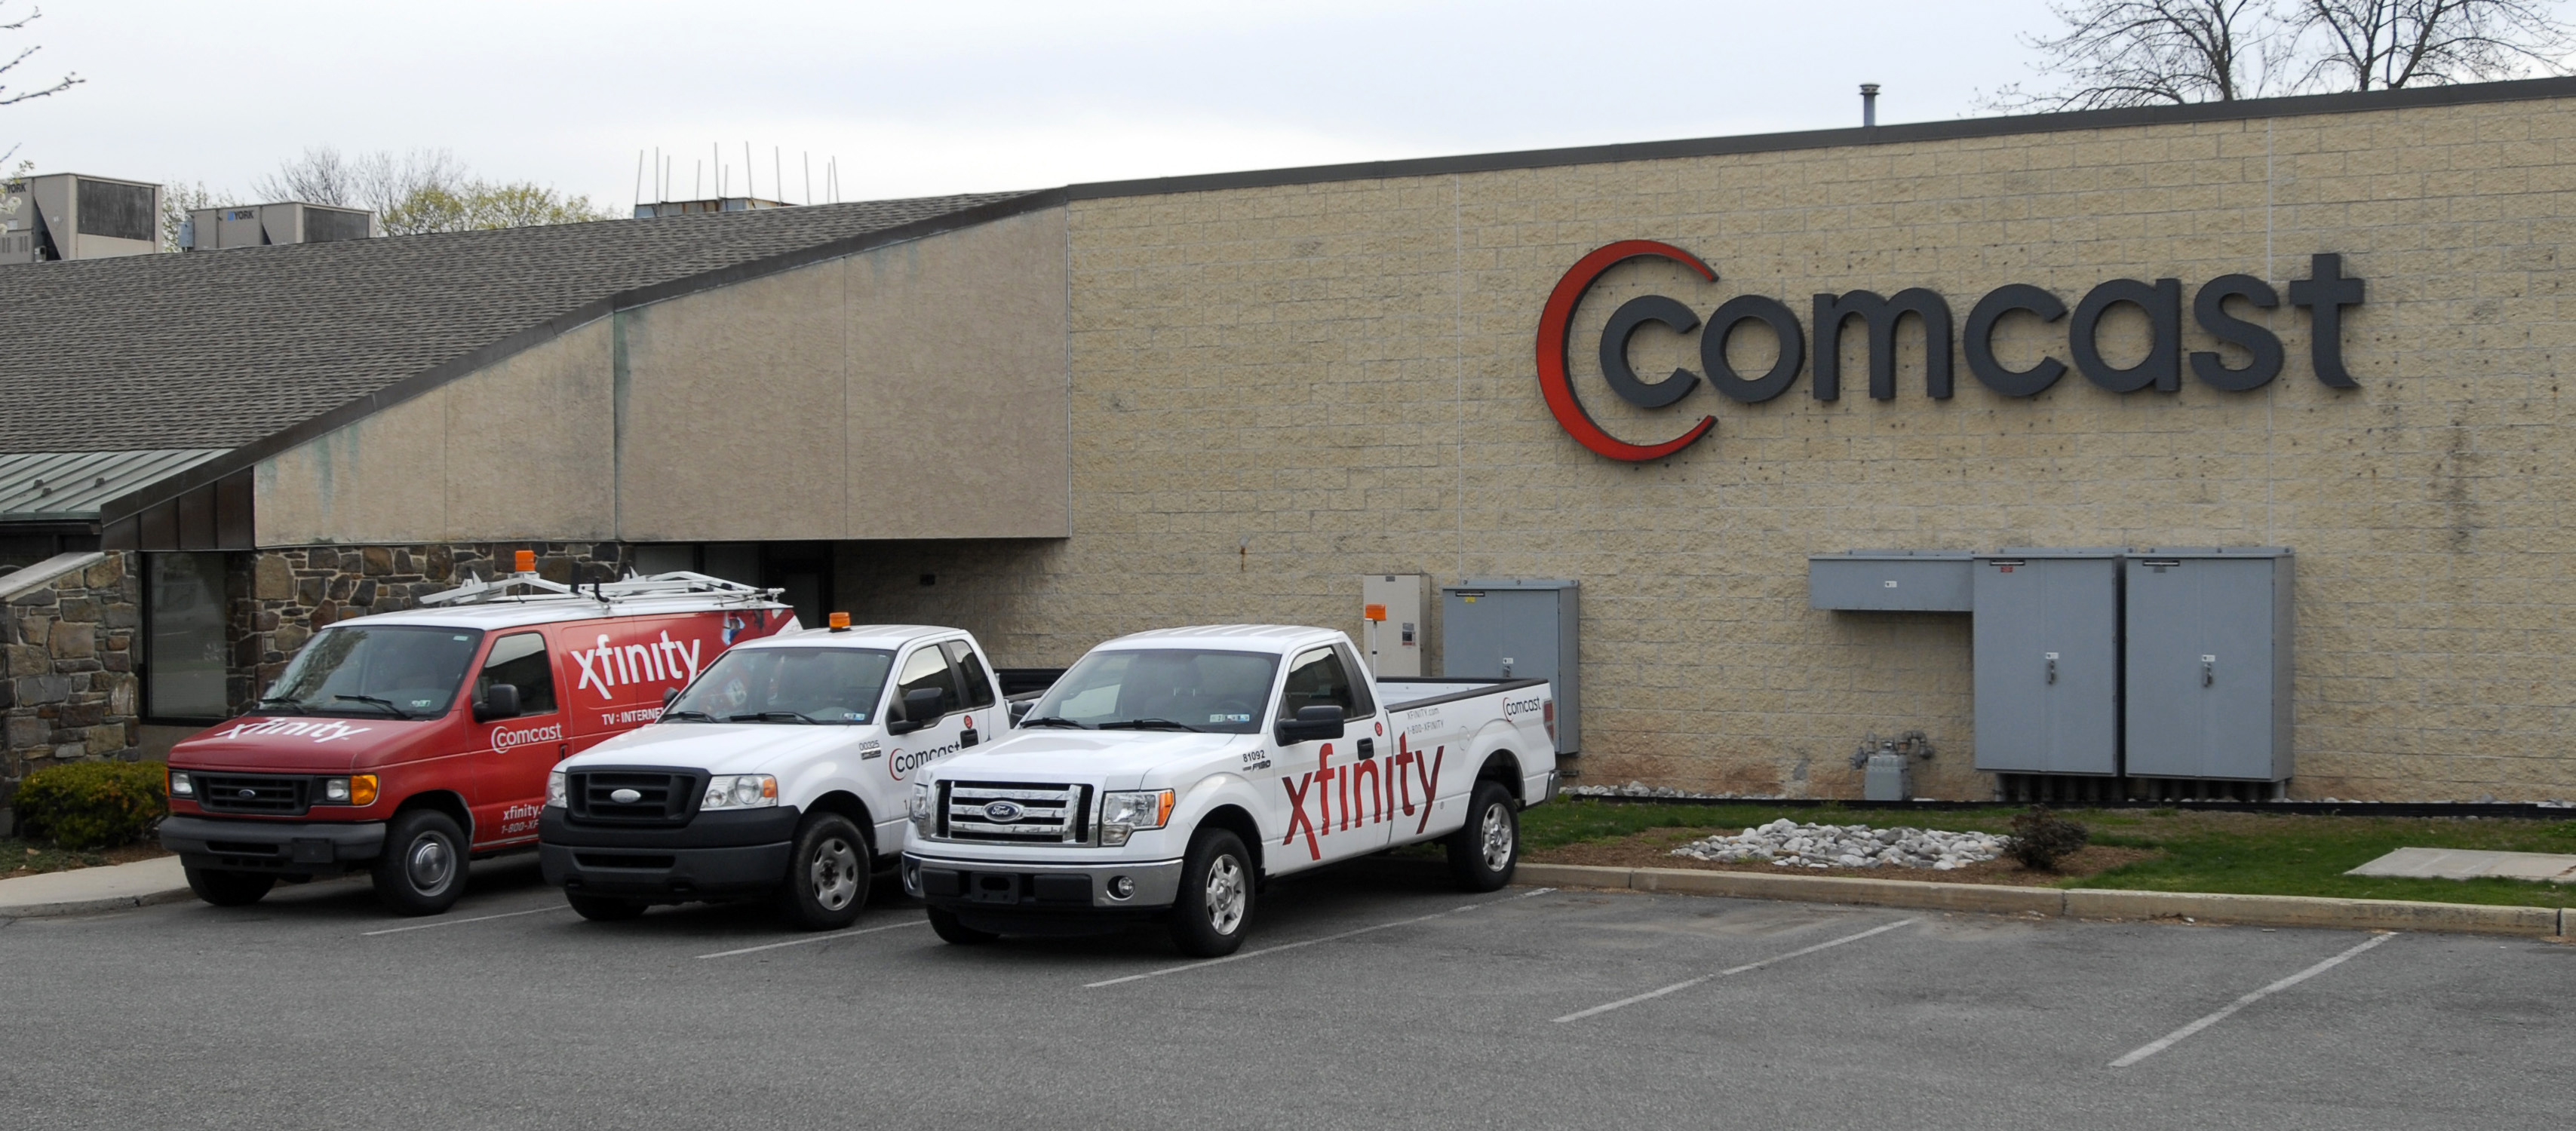 Vehicles with the Xfinity logo, a high-speed internet service offered by Comcast Corp., sit outside a Comcast facility in Pottstown, Pennsylvania, April 22, 2014.